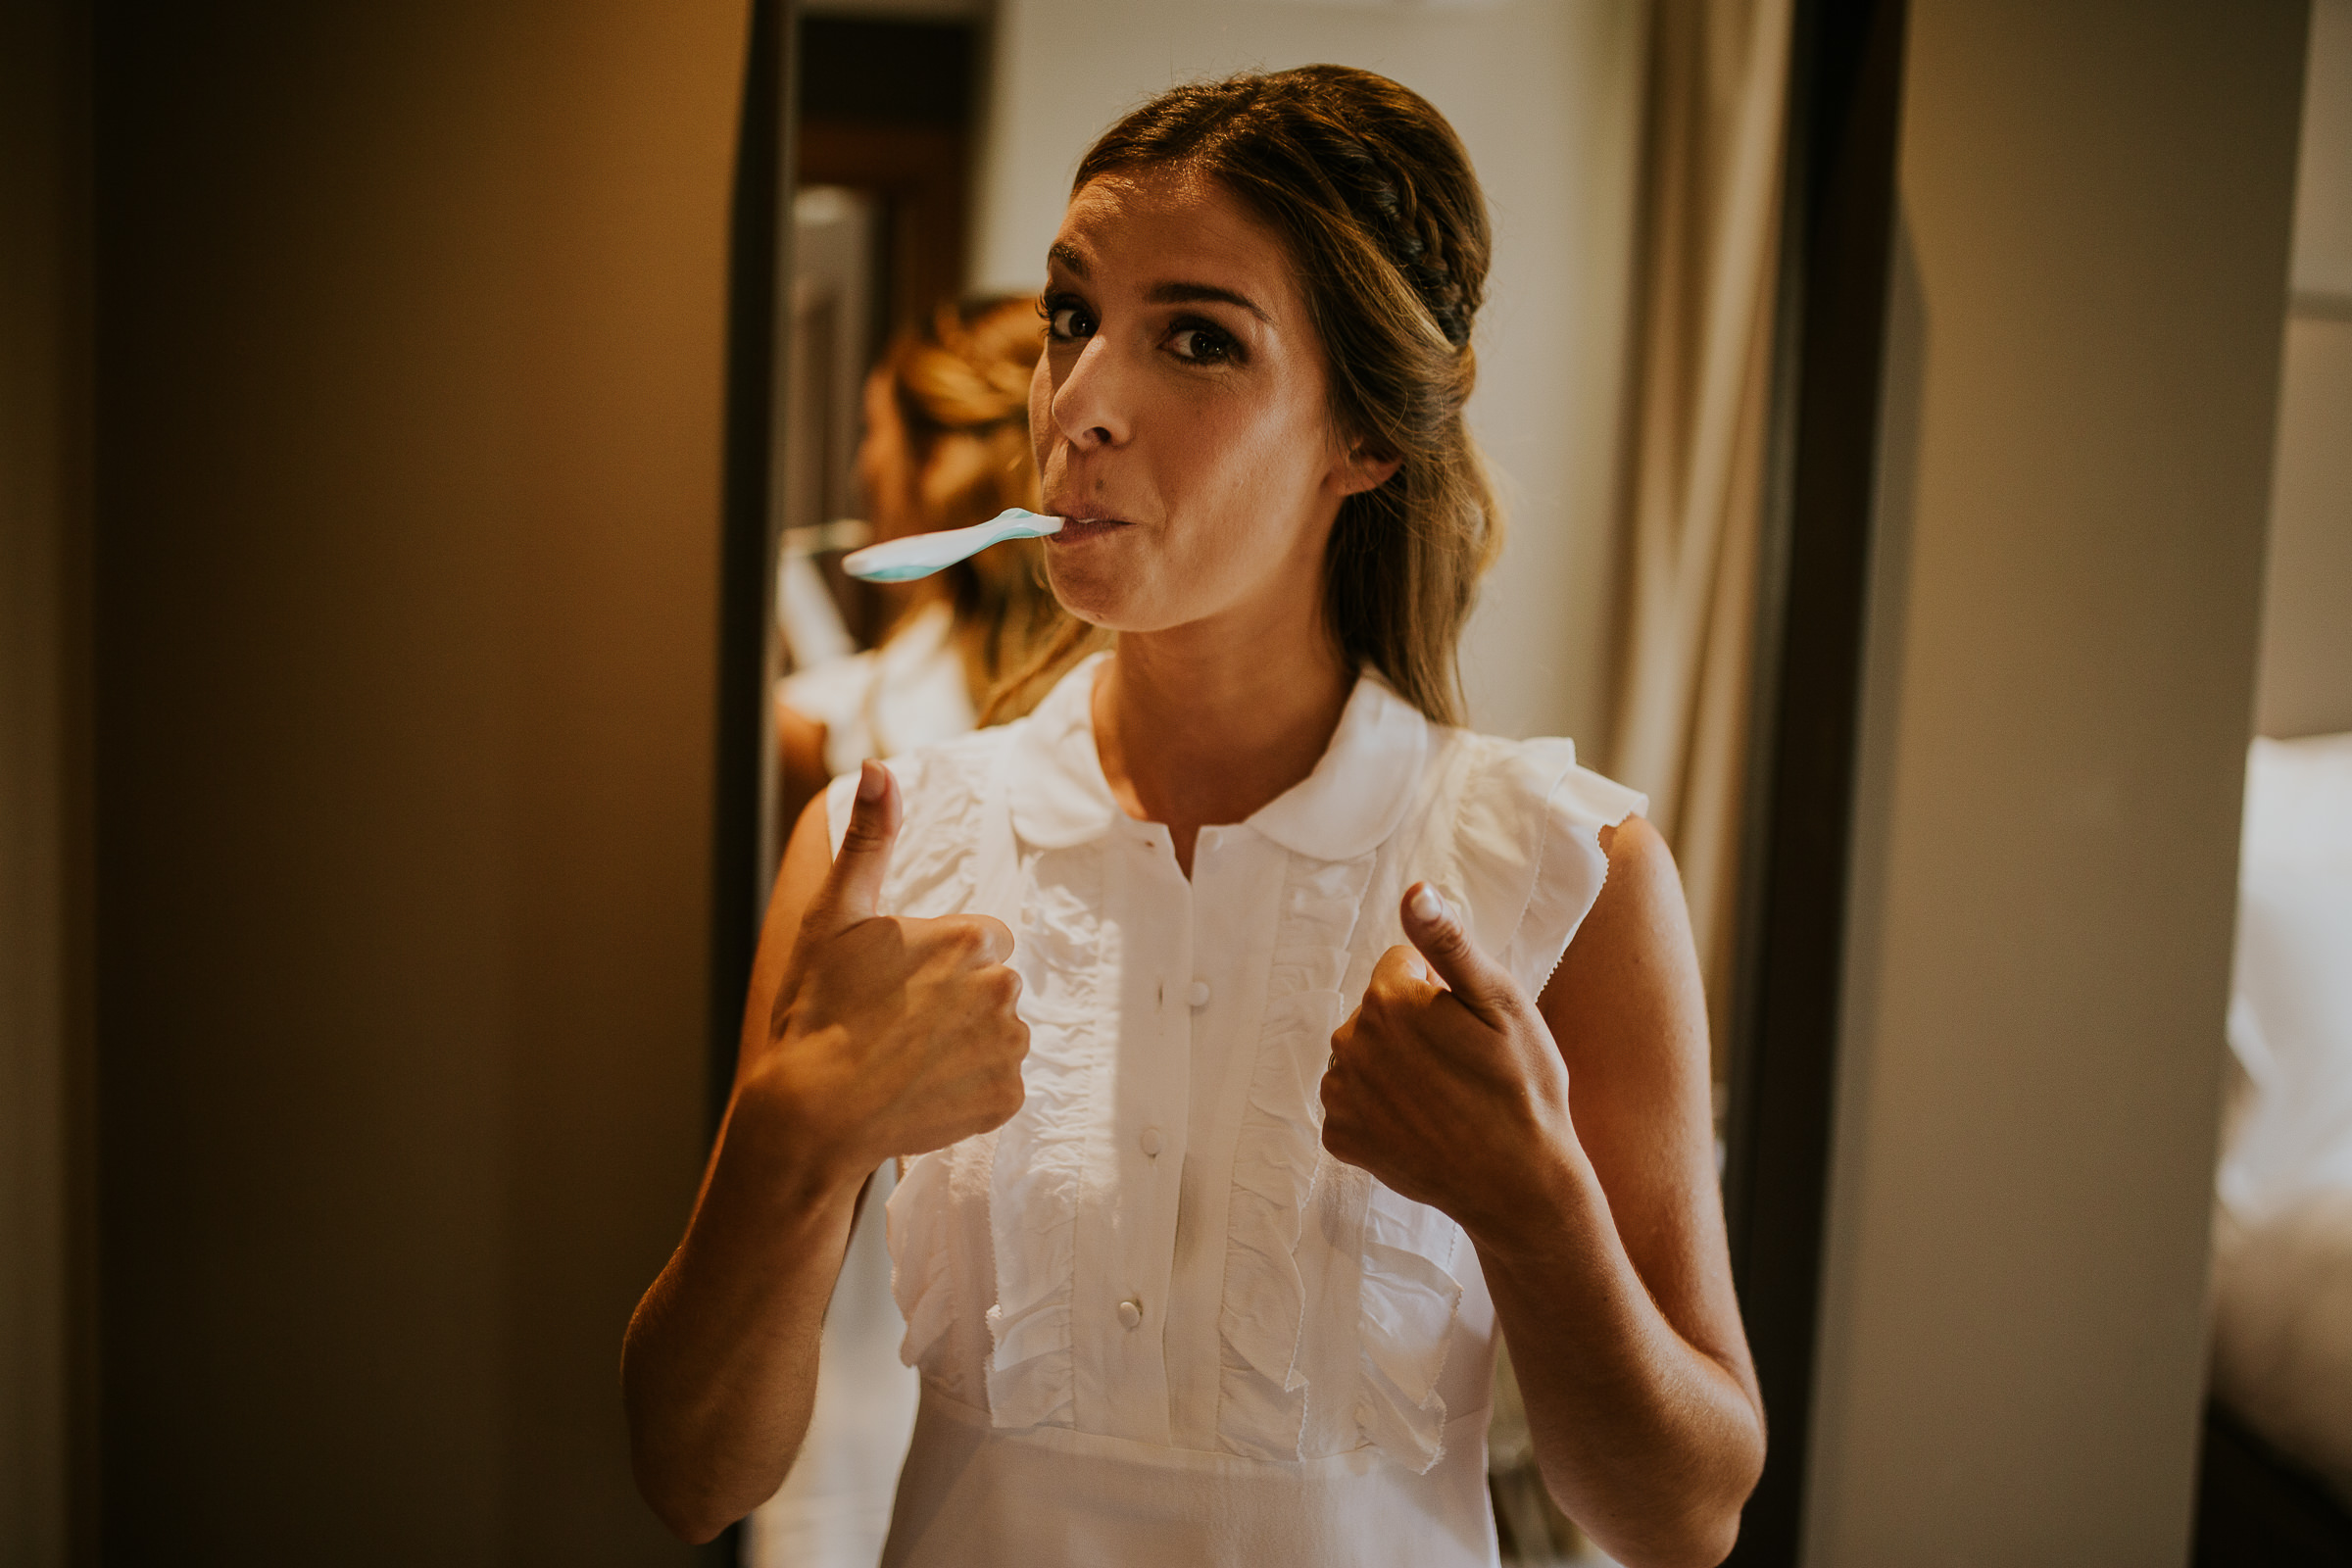 Woman brushing her teeth and doing thumbs up